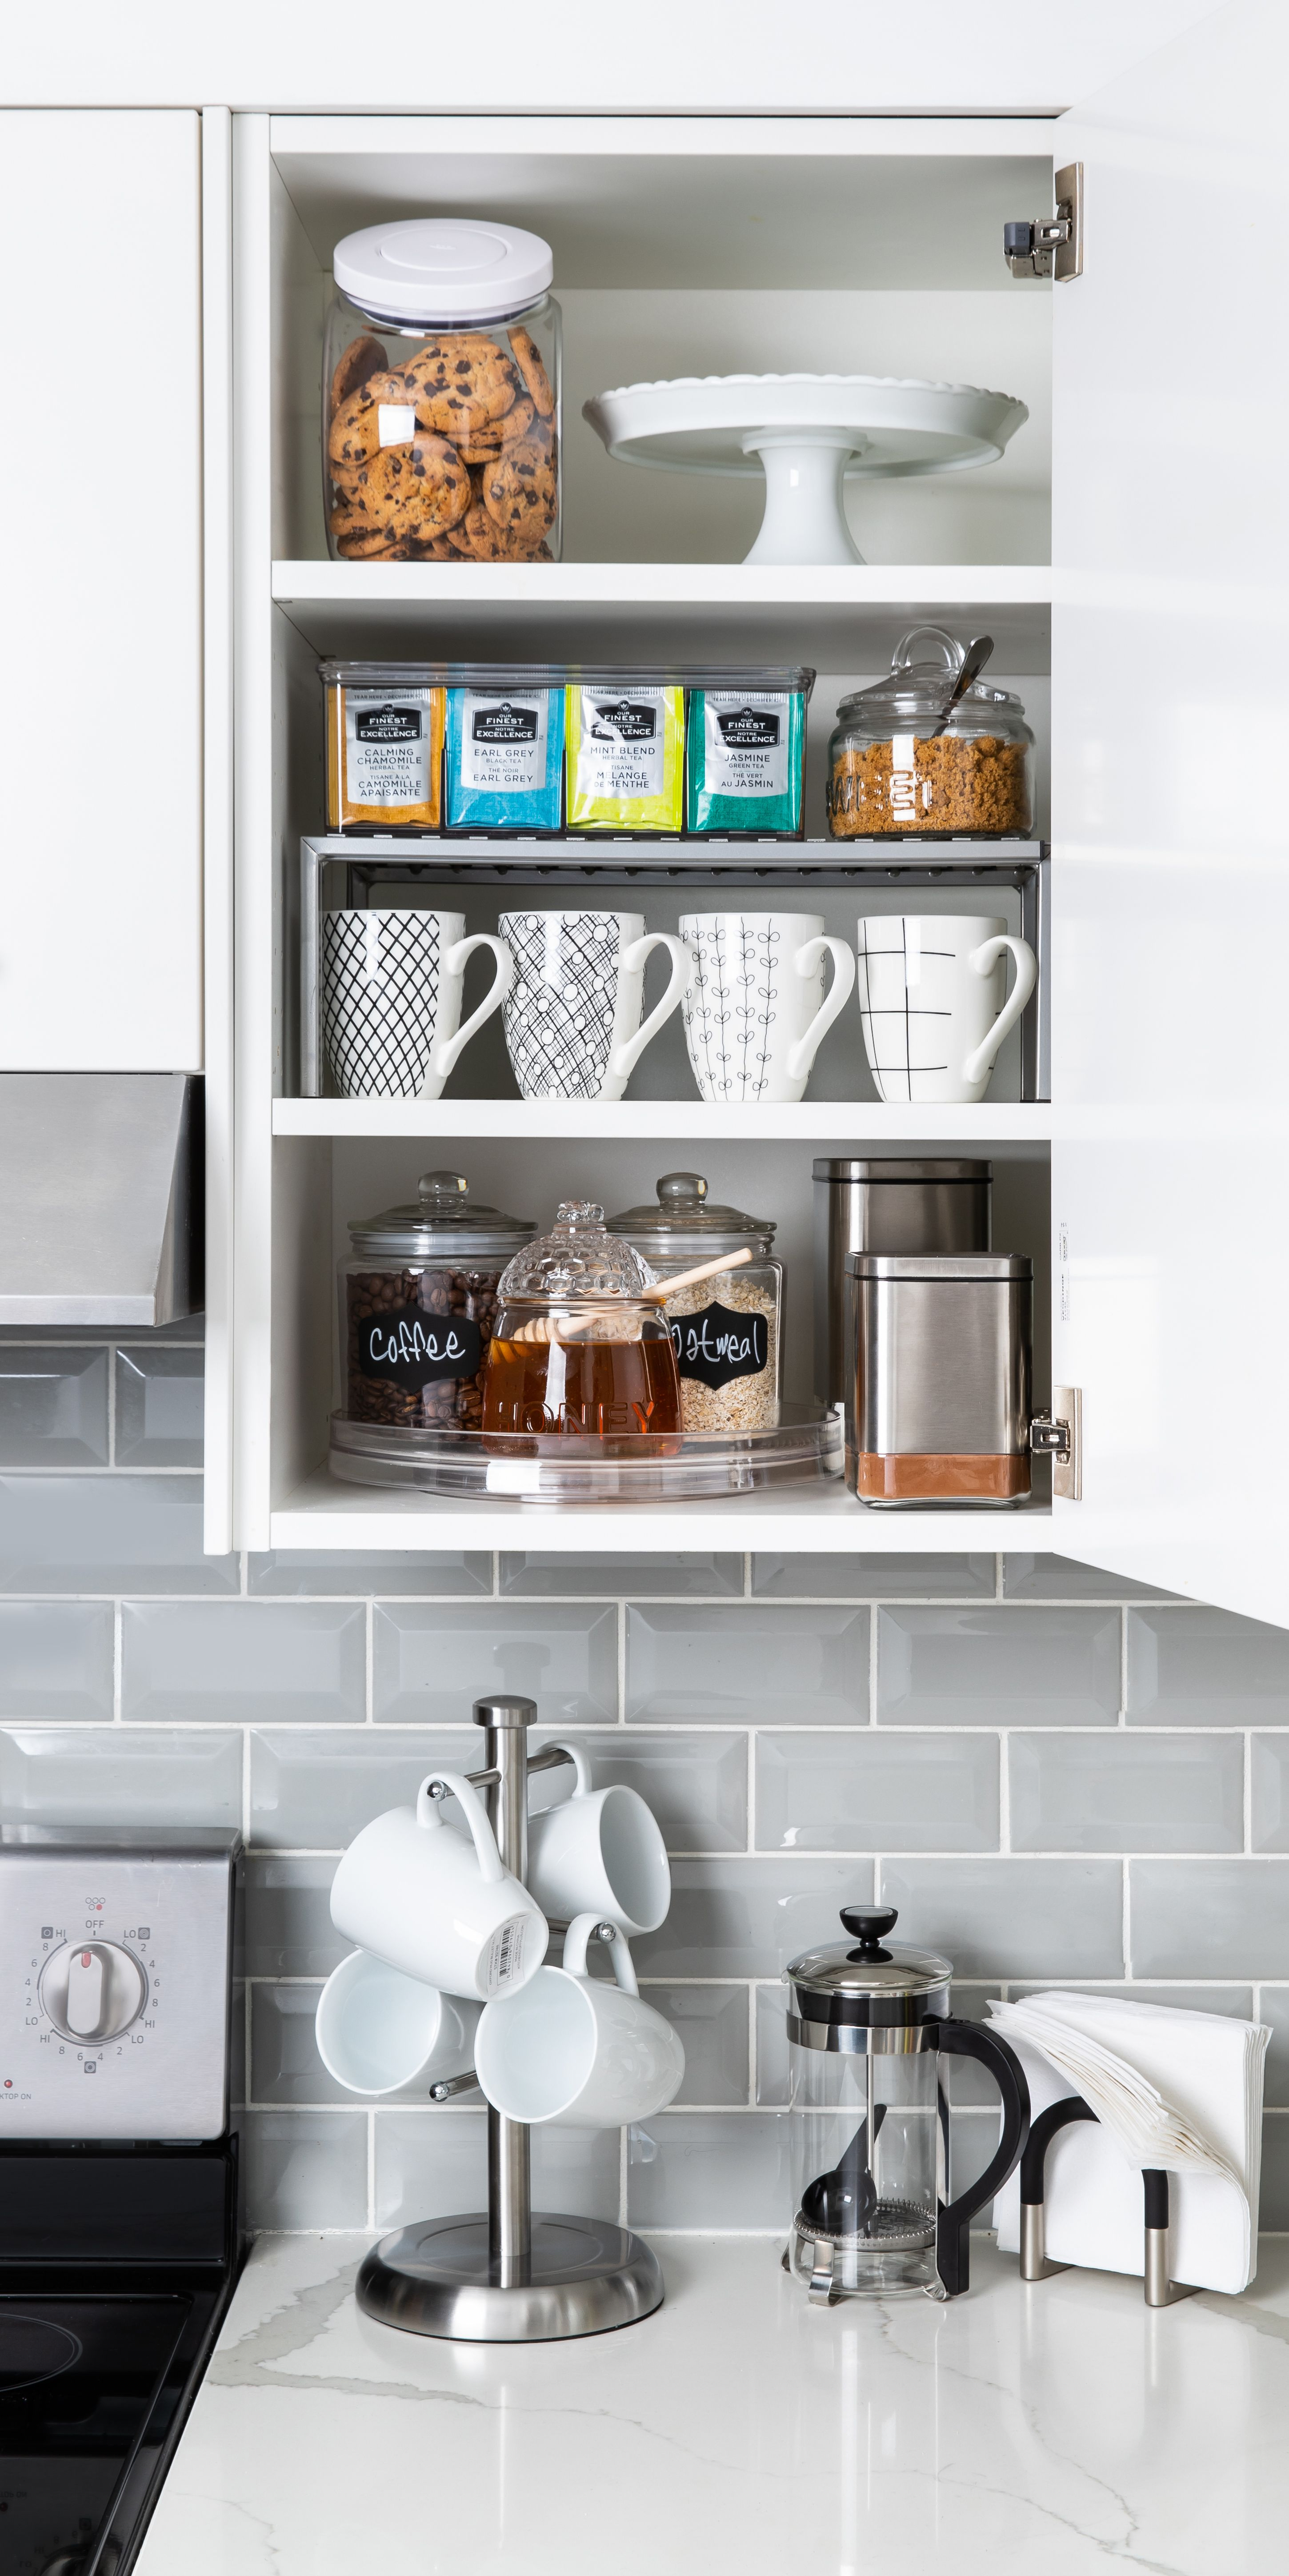 Get Your Cupboards And Counters Organized!